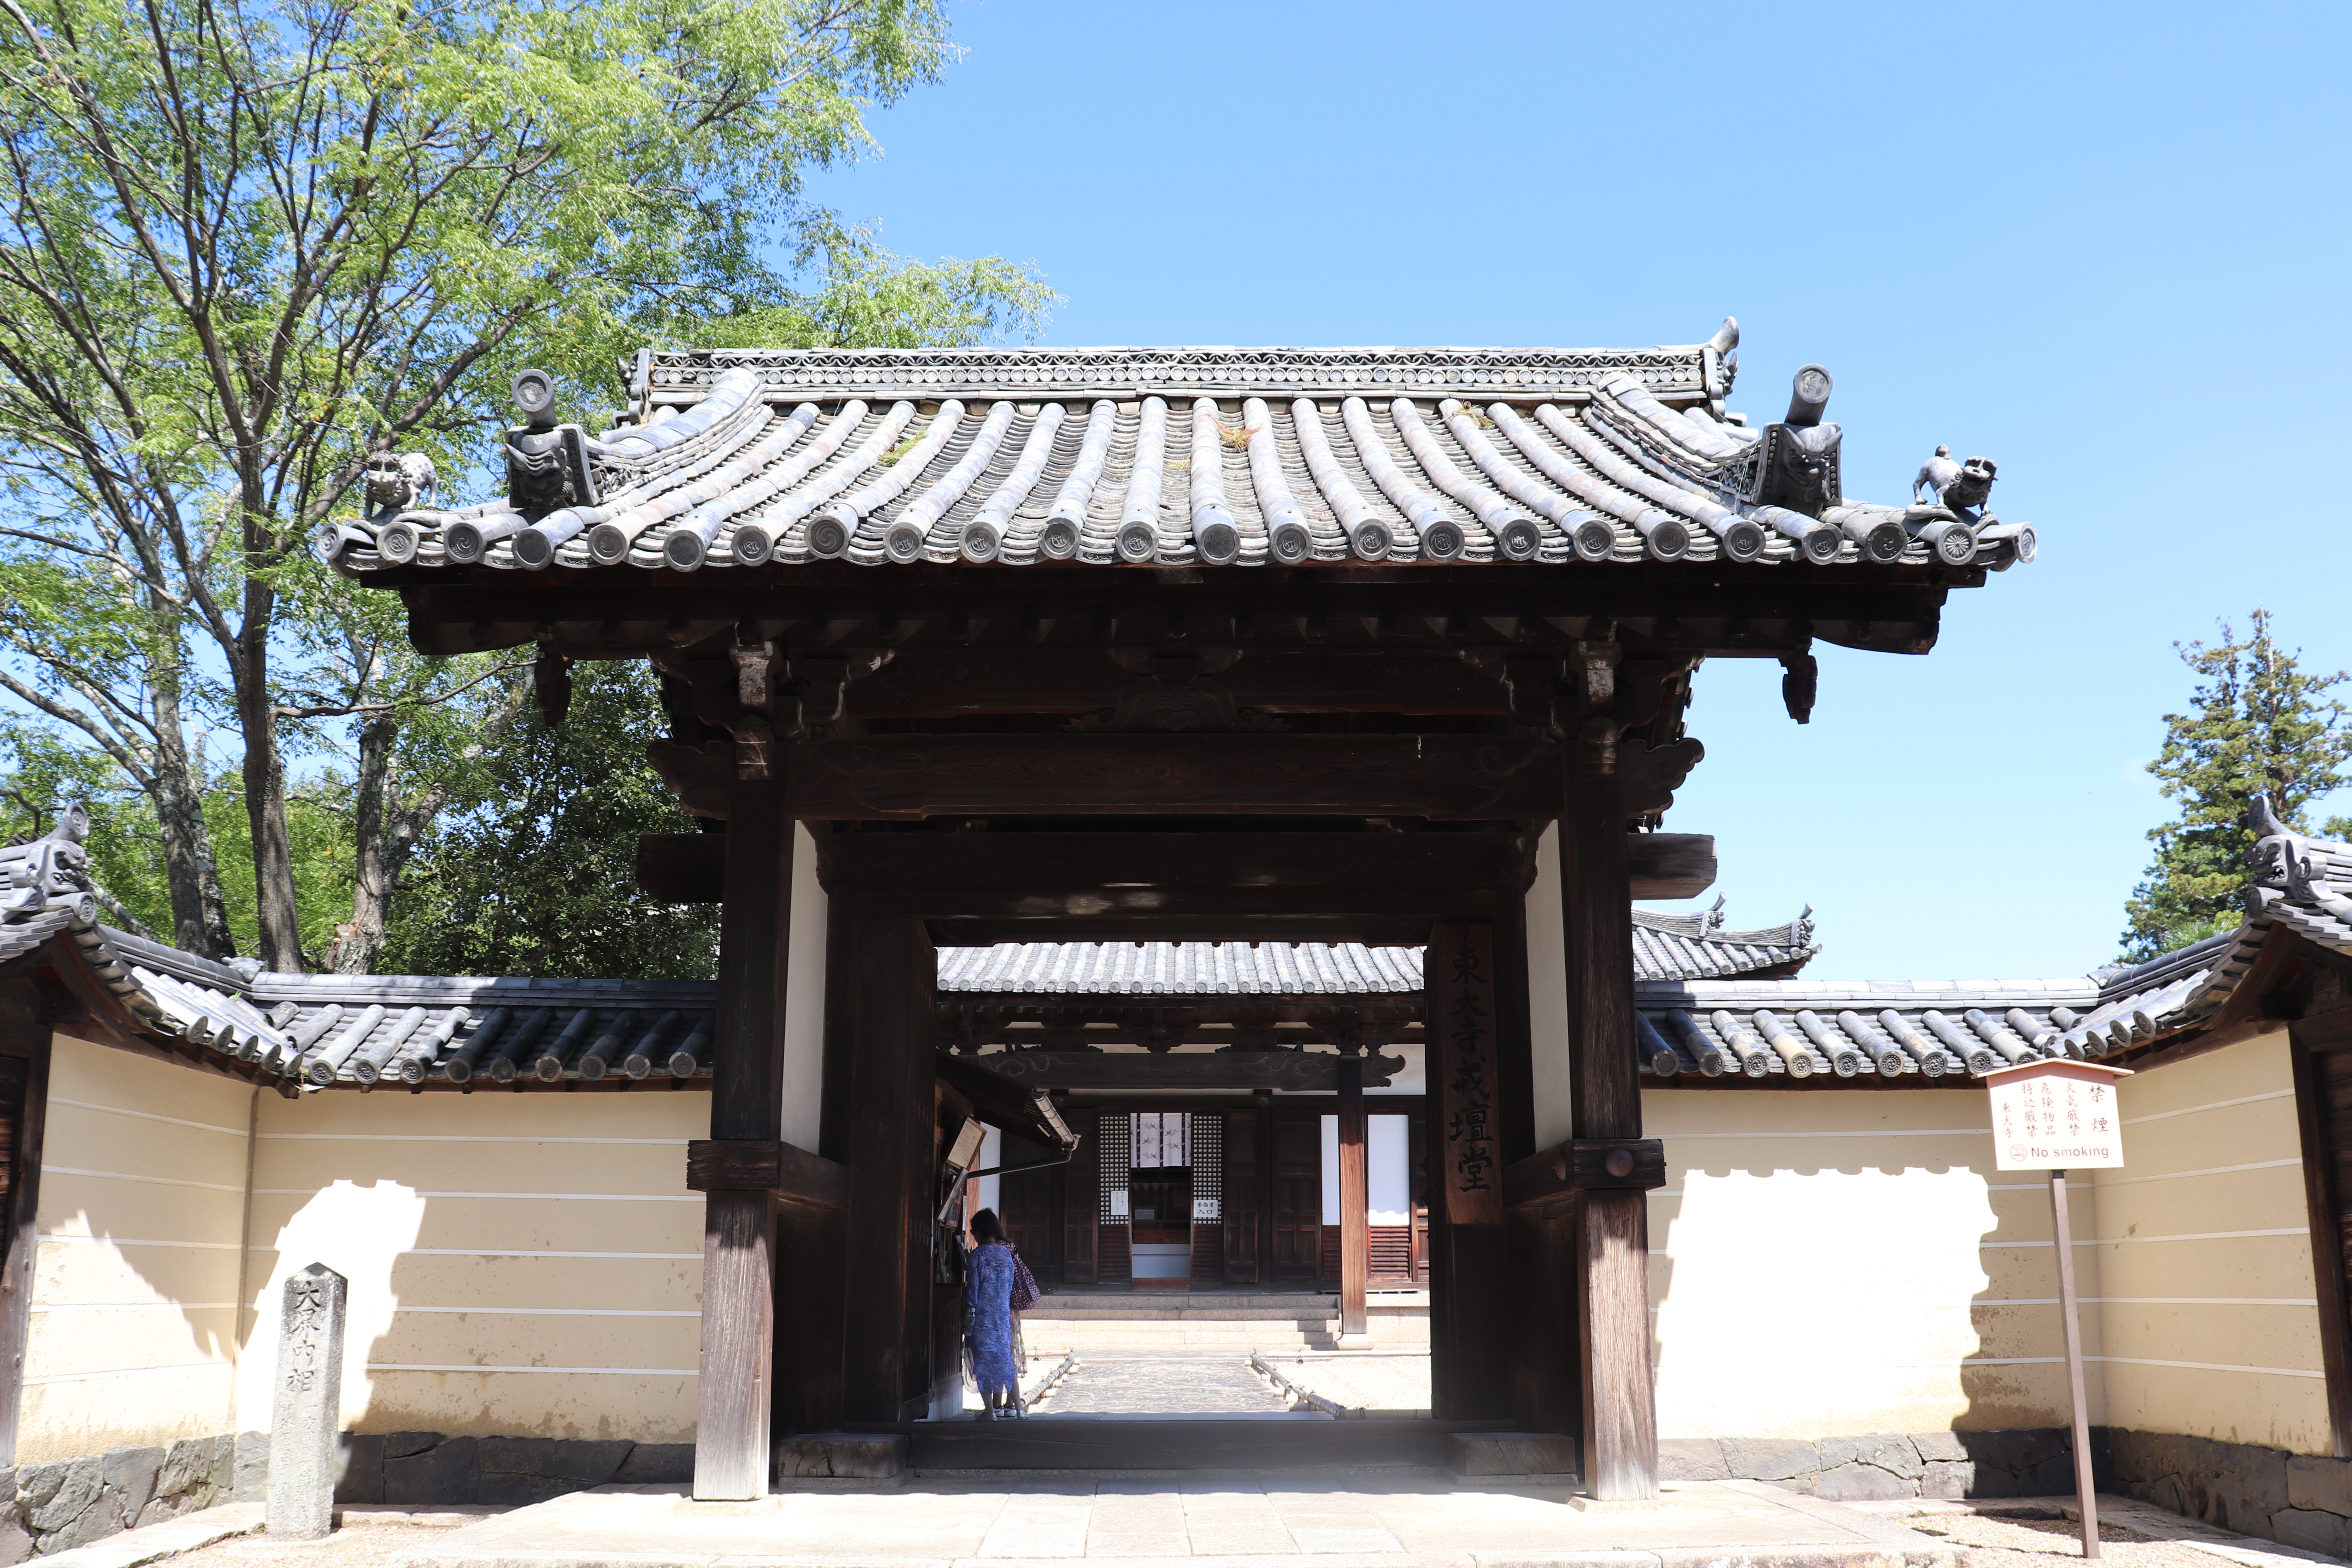 Entrance to the Kaidan-in at Todai-ji Temple